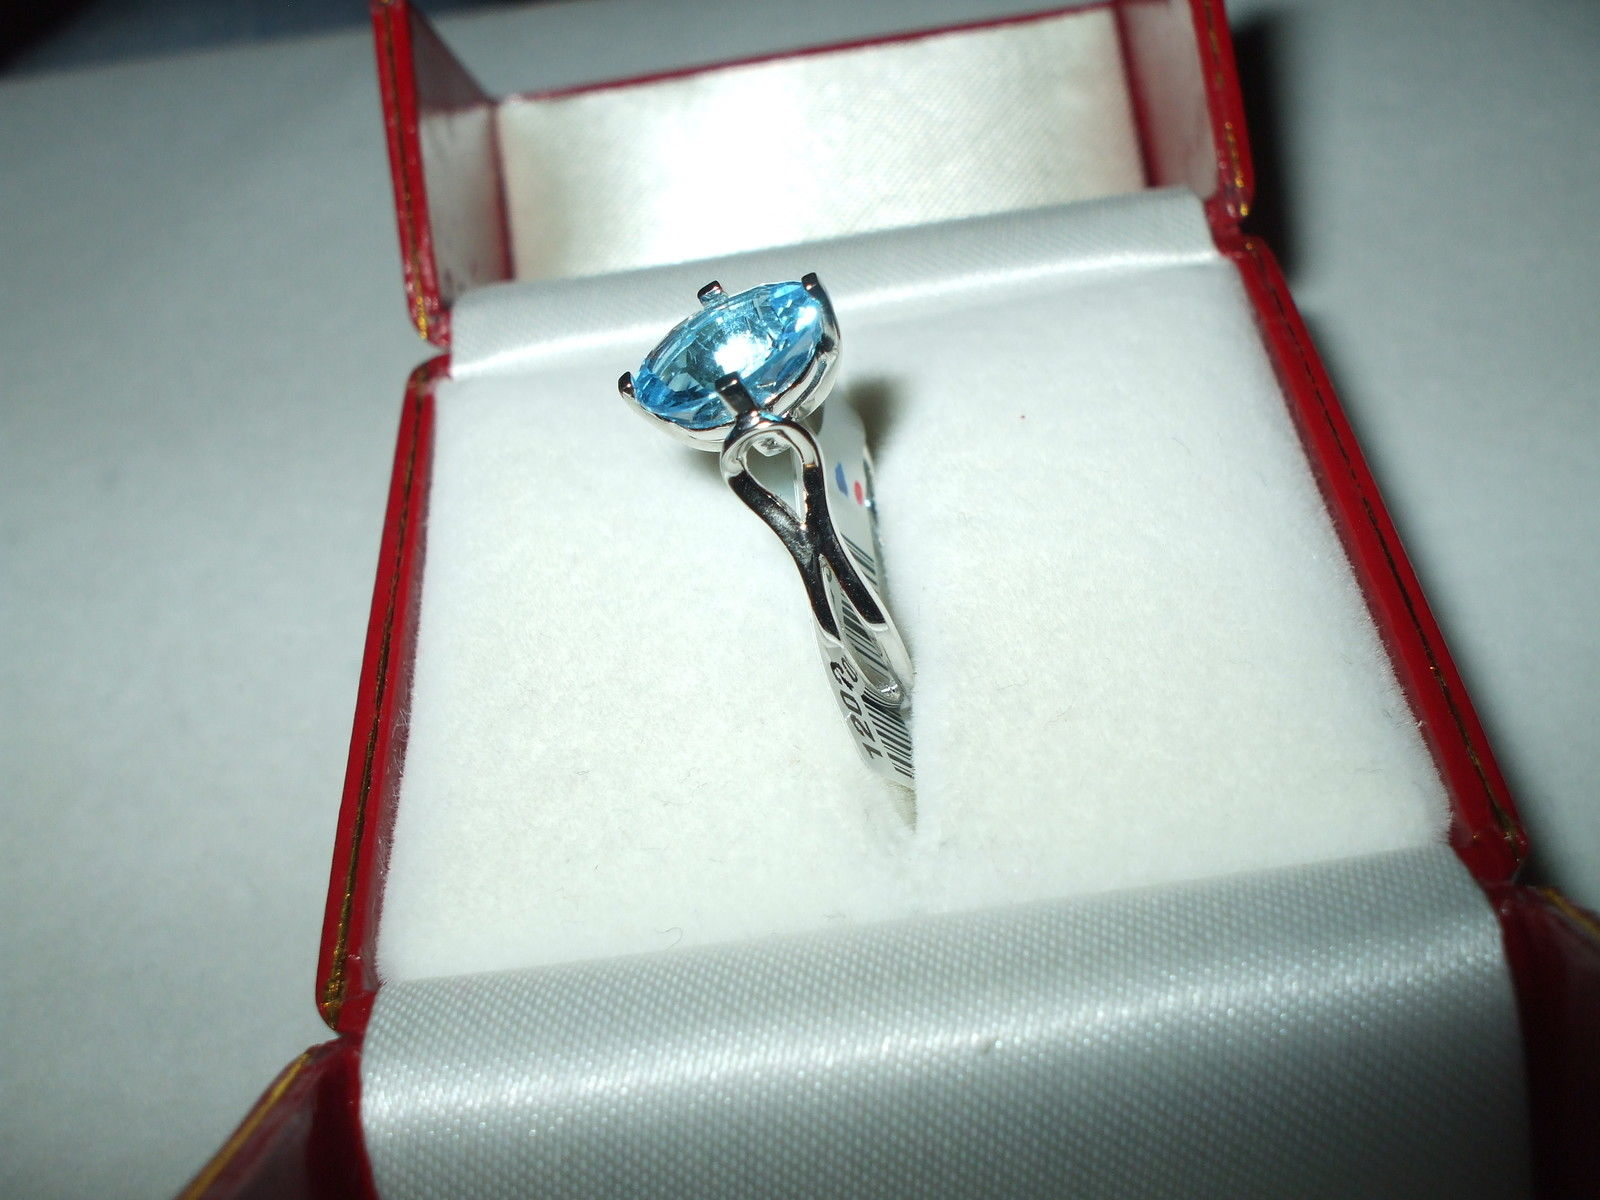 Genuine 3 ct Blue Topaz Ring 14K white gold NWT $780